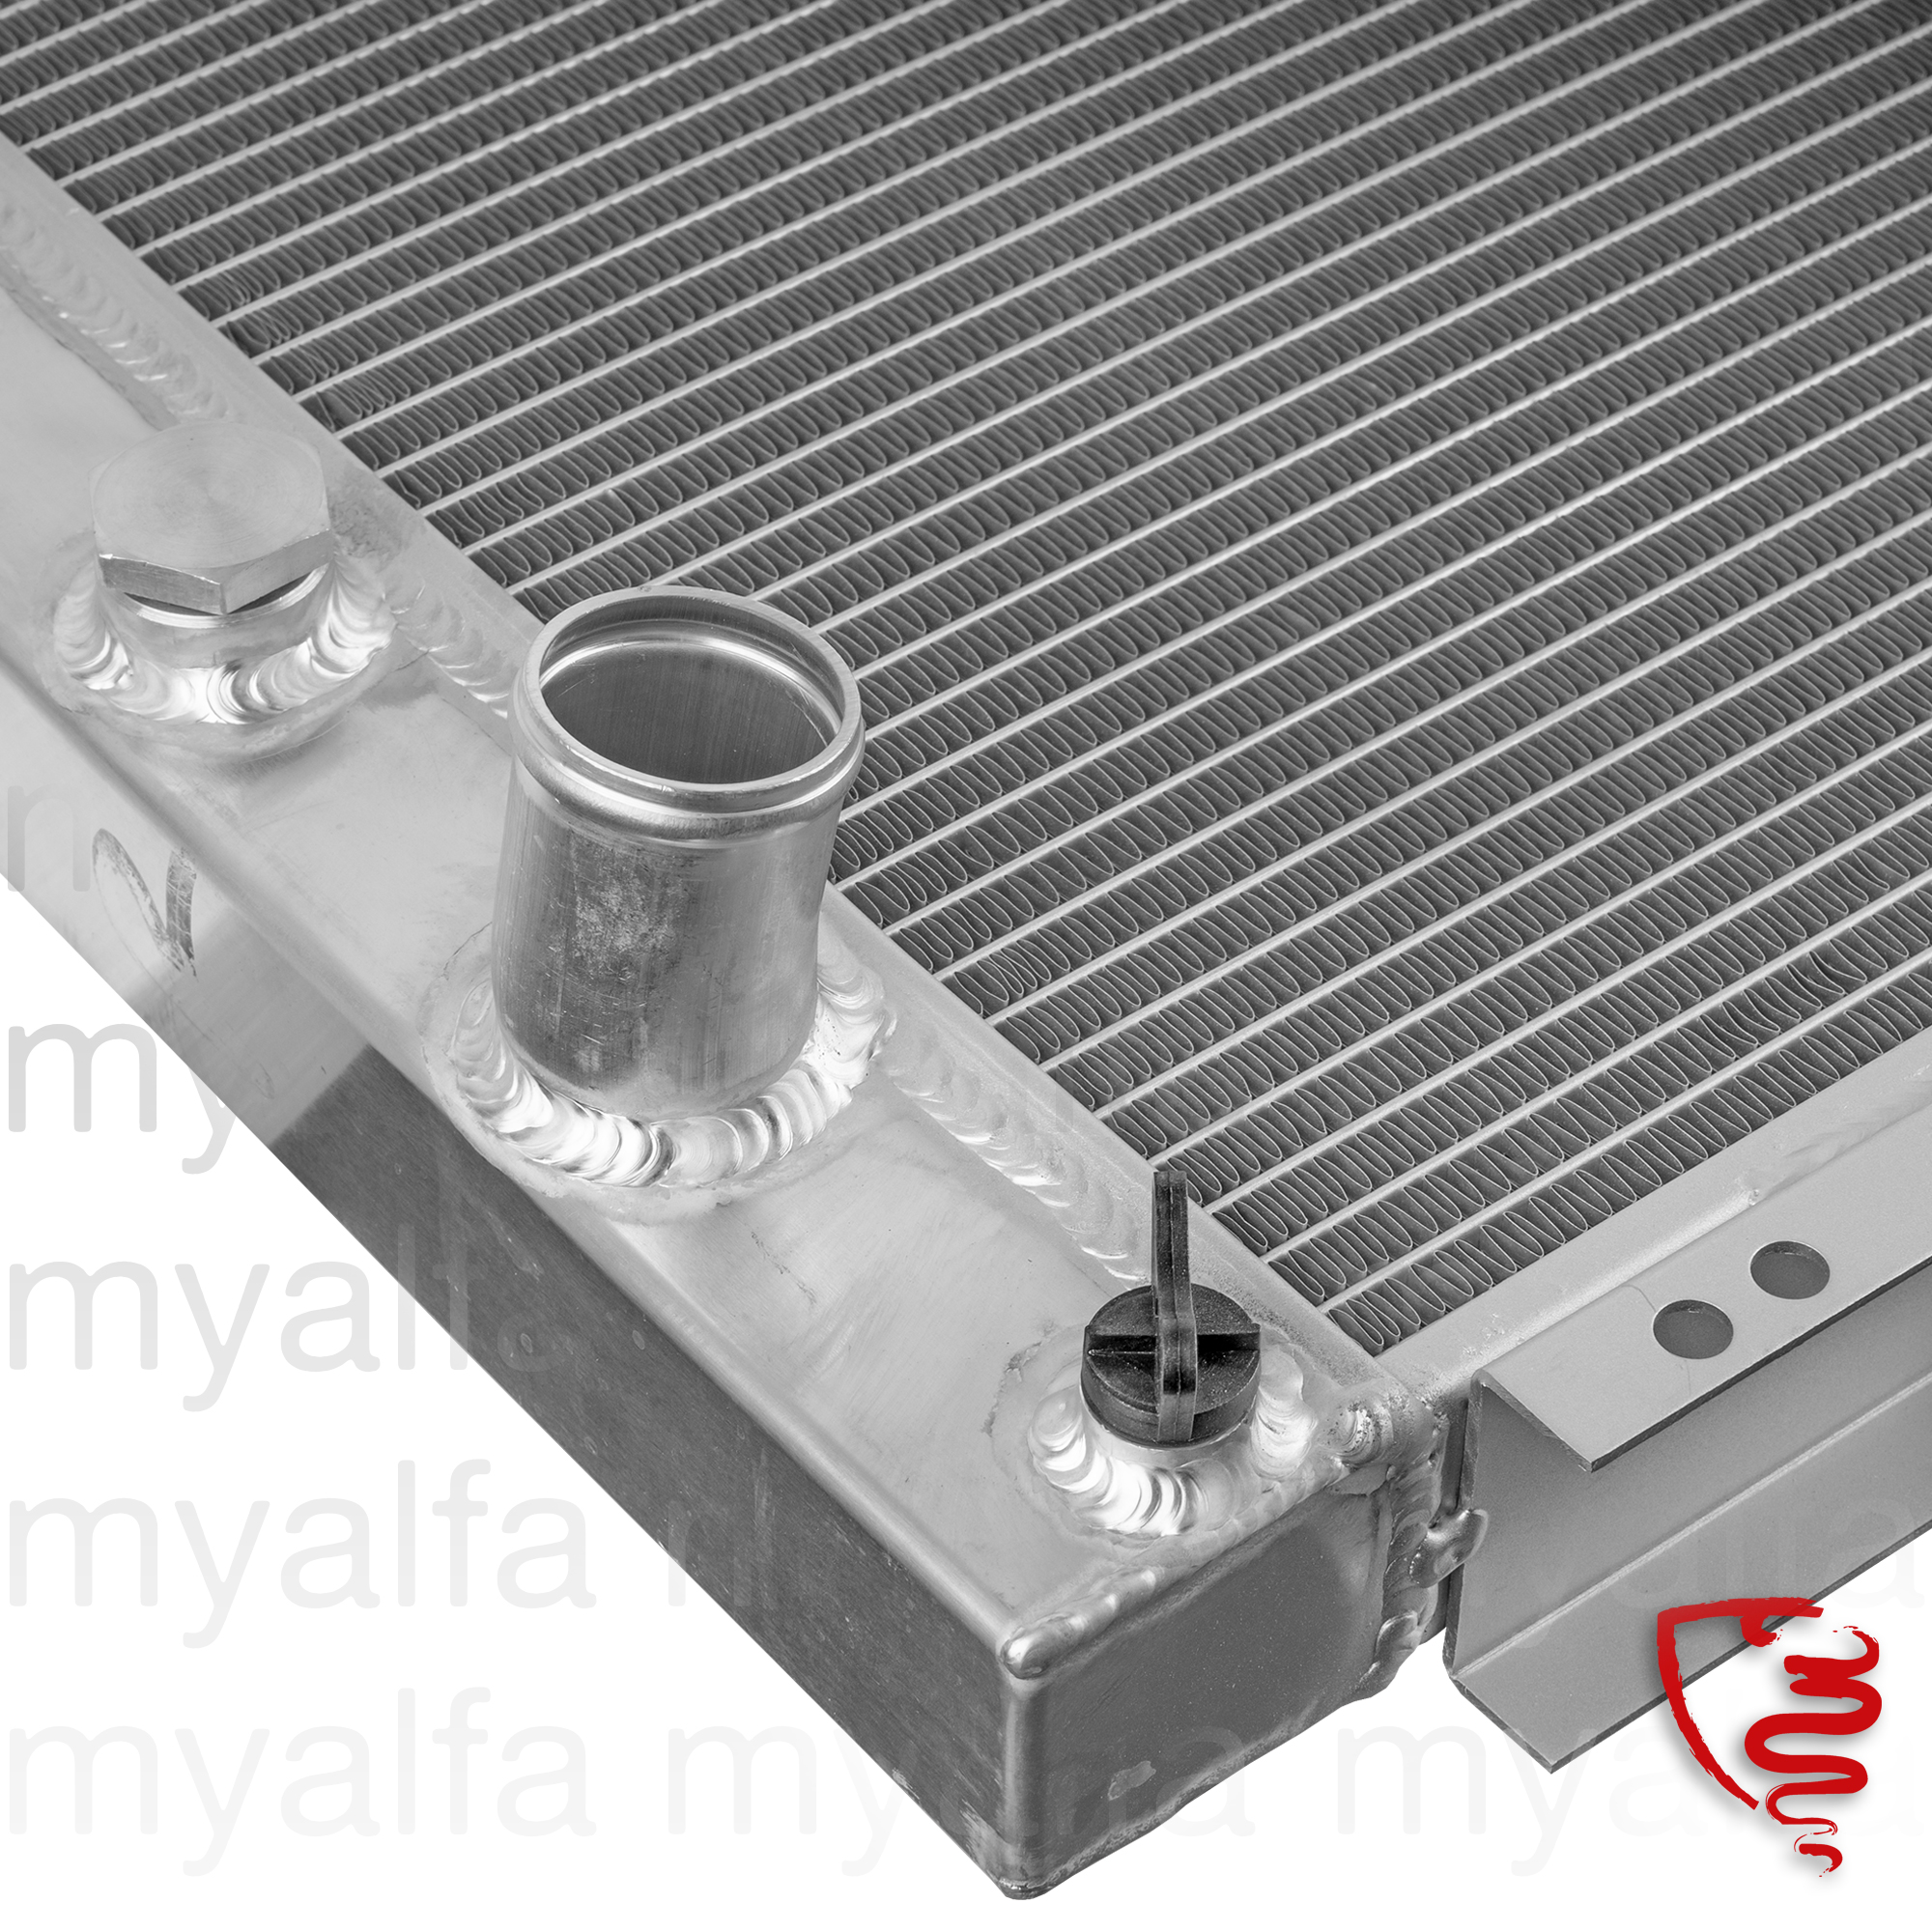 Radiator GTV6 OE. 60732307 for 116/119, Alfetta GTV6, Cooling System, Radiator